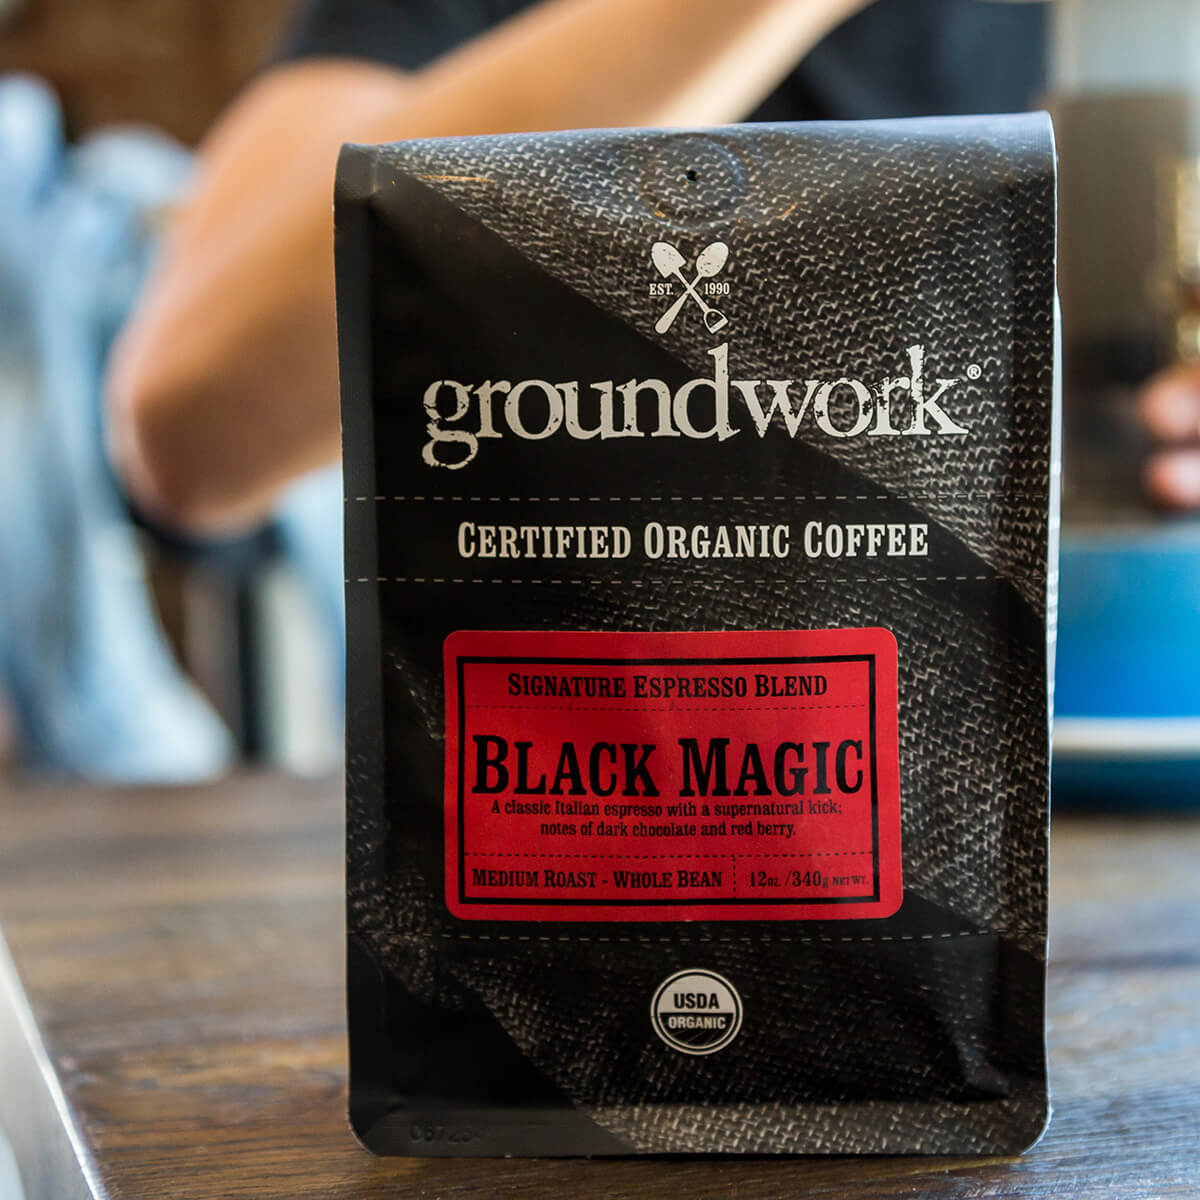 bag of Groundwork's Black Magic coffee